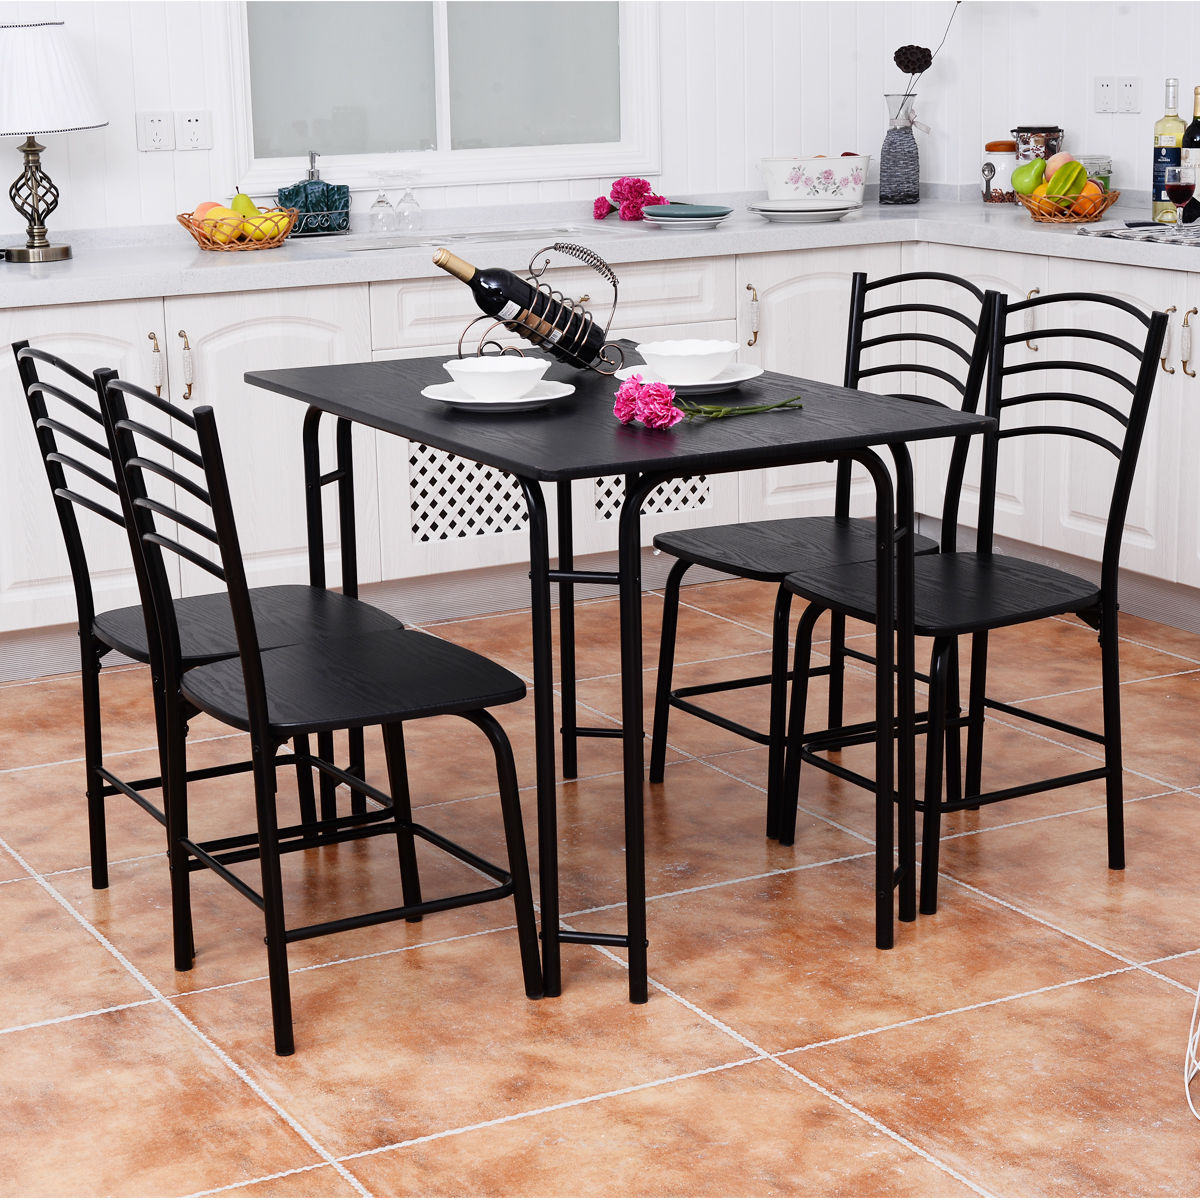 Click here to buy Costway 5 PCS Black Dining Room Set Table 4 Chairs Steel Frame Home Kitchen Furniture by Costway.